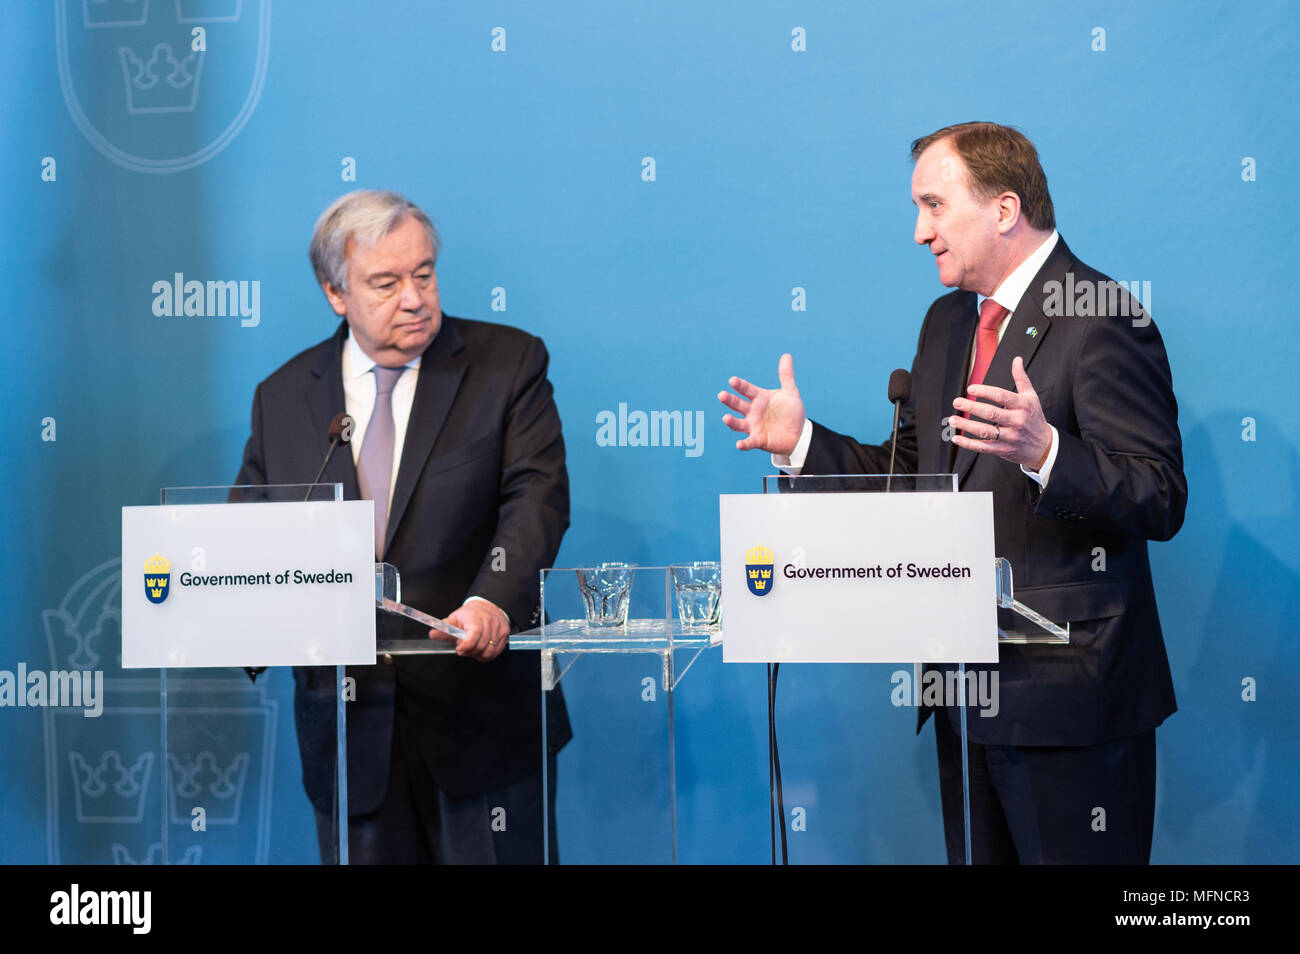 Stockholm, Sweden, 23th April, 2018. UN Secretary-General and Security Council to meet in Sweden. - Stock Image